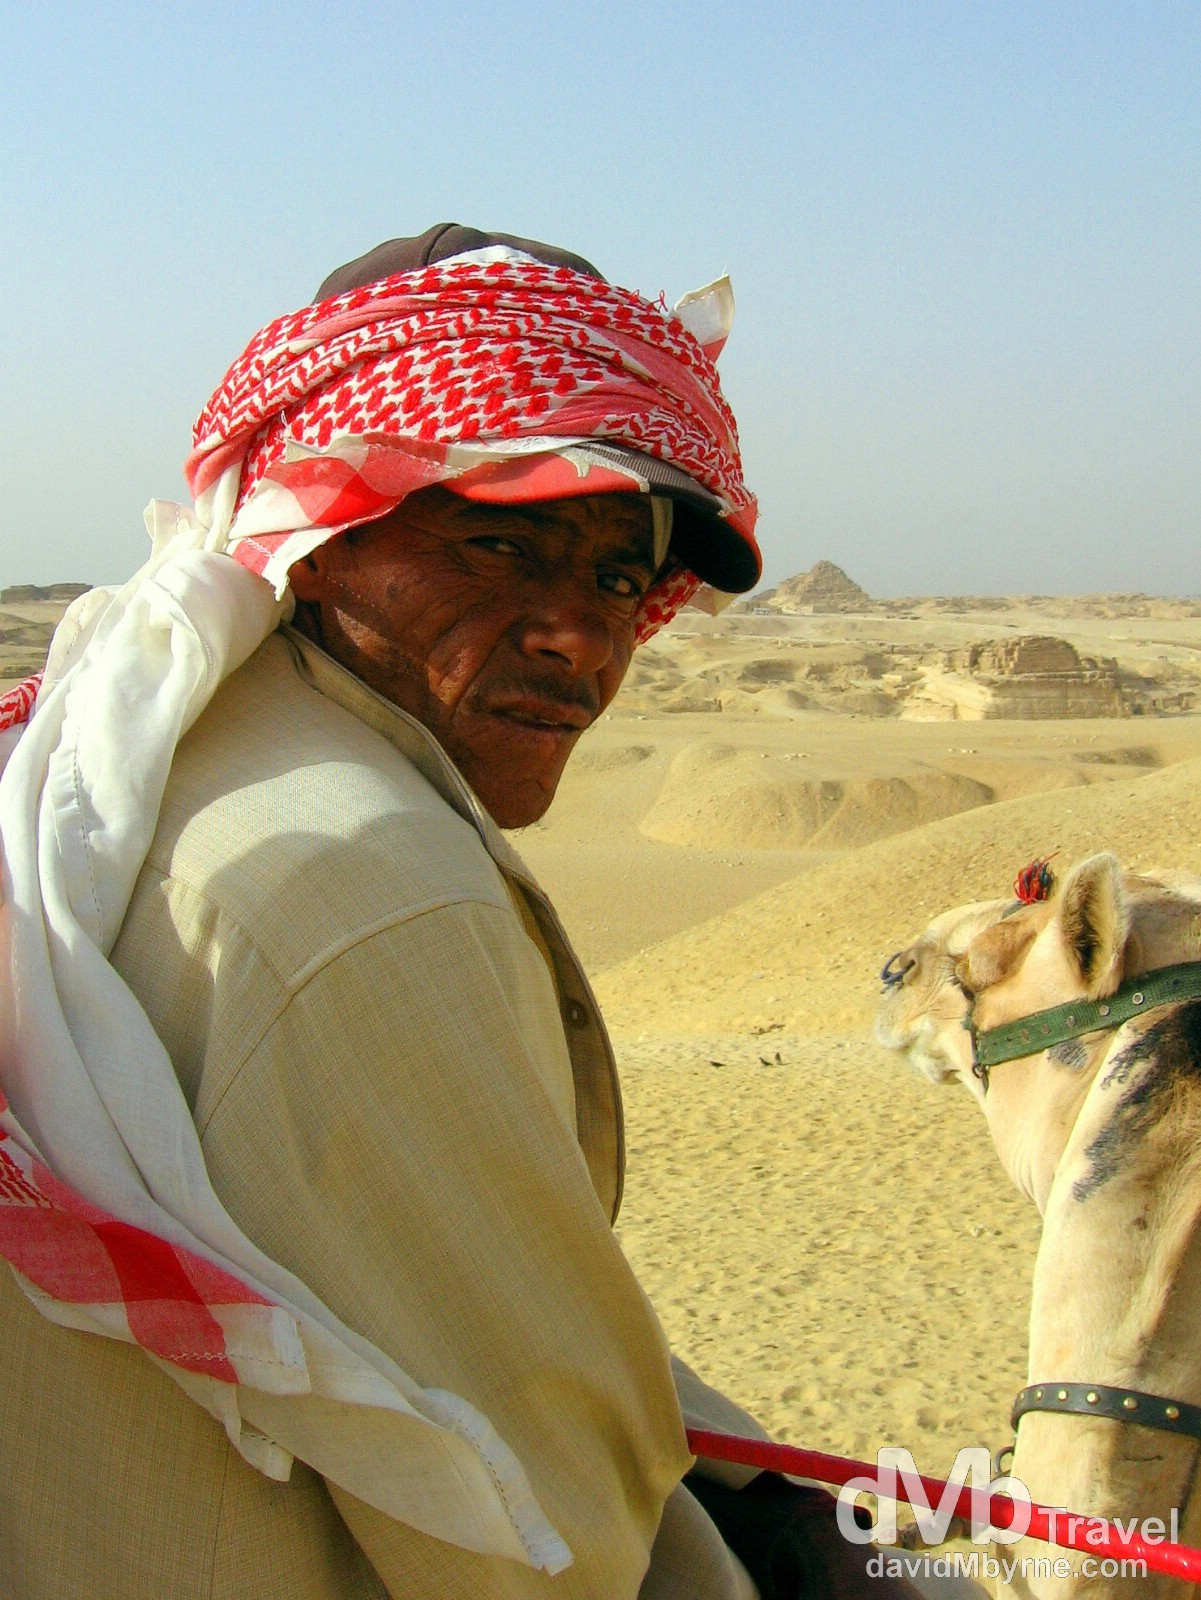 A Bedouin camel herder on the Giza Plateau, Giza, Egypt. April 13, 2008.